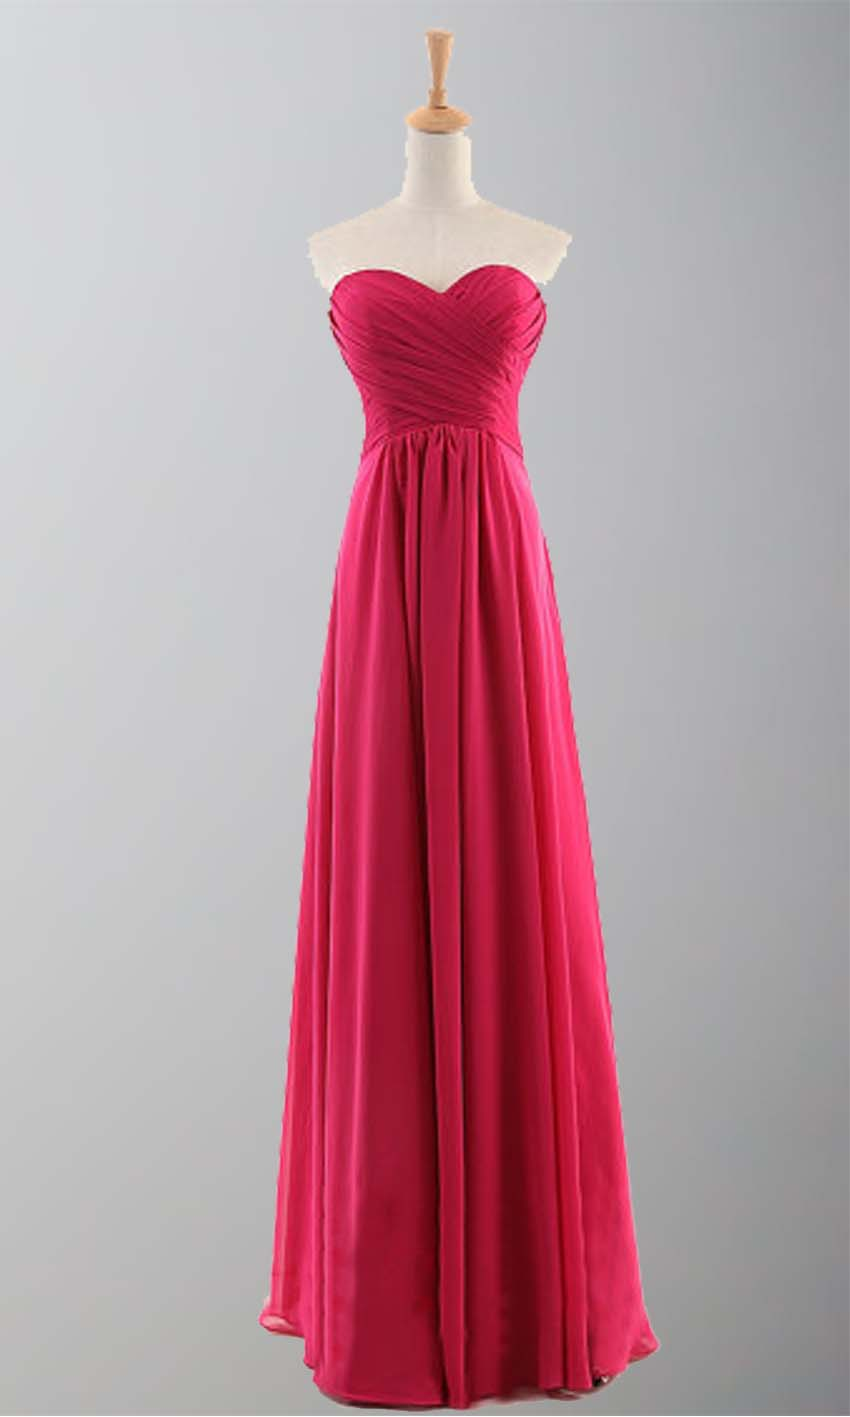 £84.00 : cheap prom dresses uk, bridesmaid dresses, 2014 prom & evening dresses, look for cheap elegant prom dresses 2014, cocktail gowns, or dresses for special occasions? kissprom.co.uk offers various bridesmaid dresses, evening dress, free shipping to uk etc.